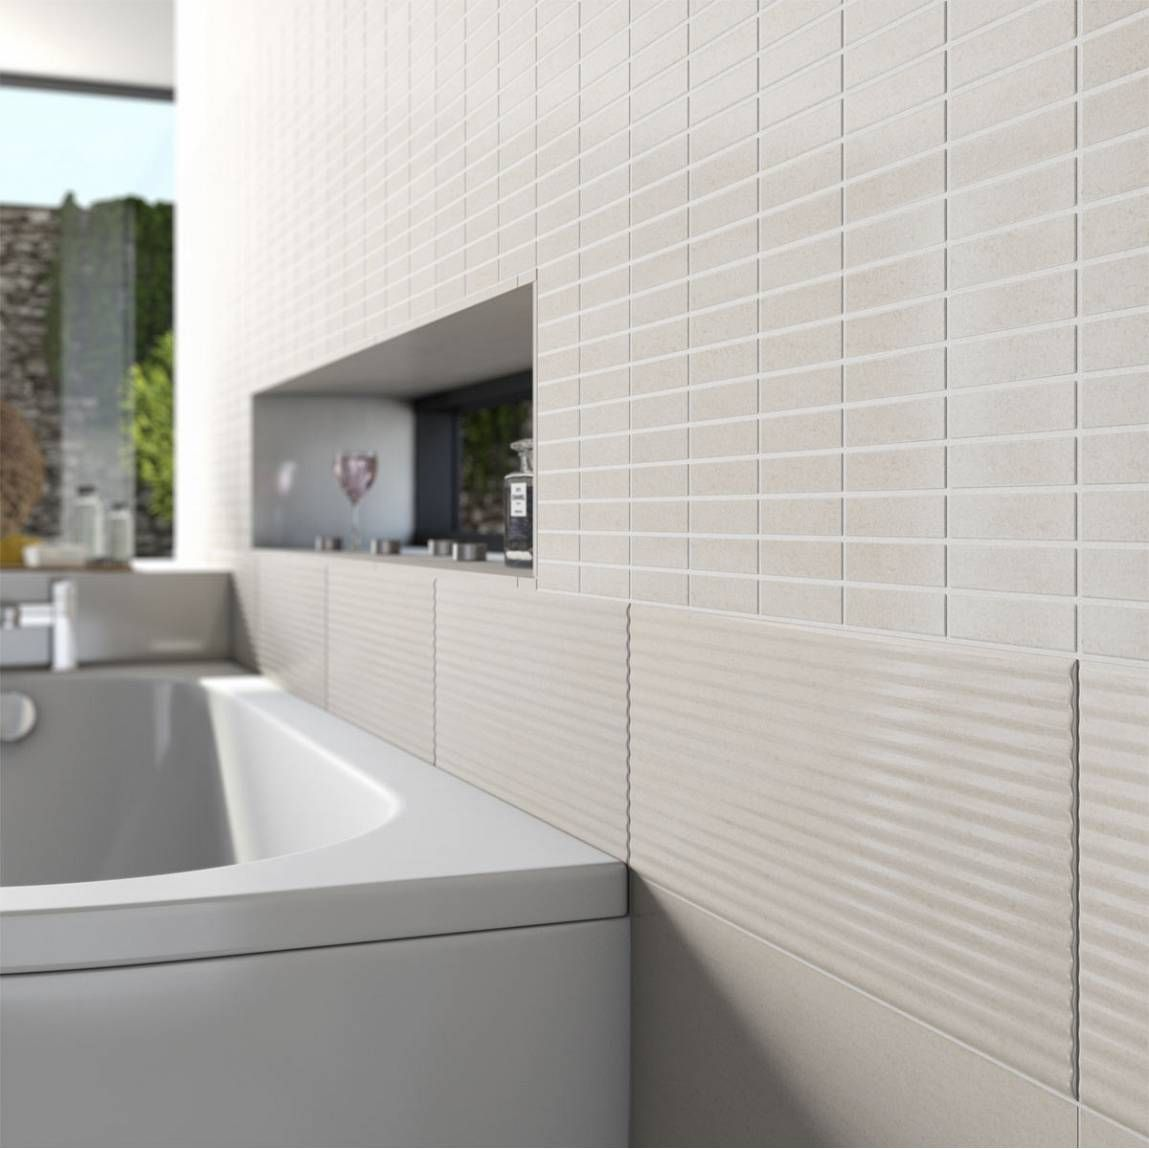 Find This Pin And More On My New Bathroom Lucia Ripple Texture Ceramic Wall Tile X